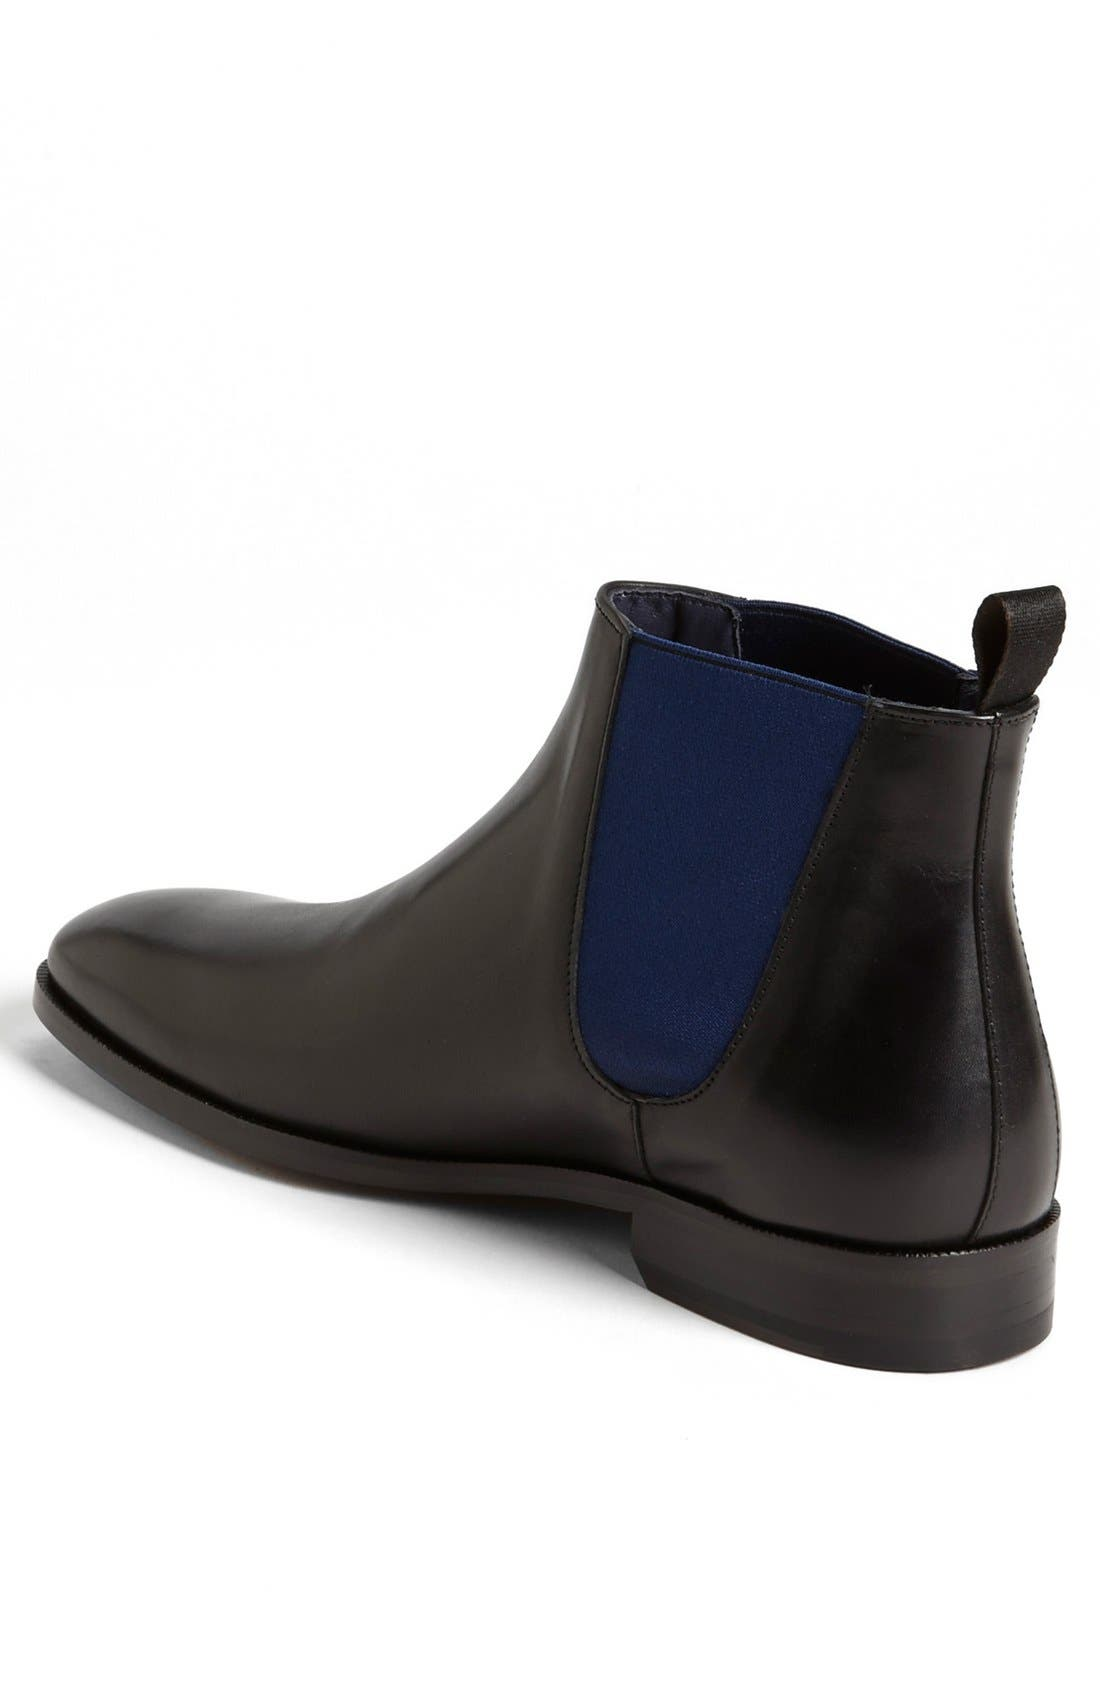 Alternate Image 2  - To Boot New York 'Brent' Chelsea Boot